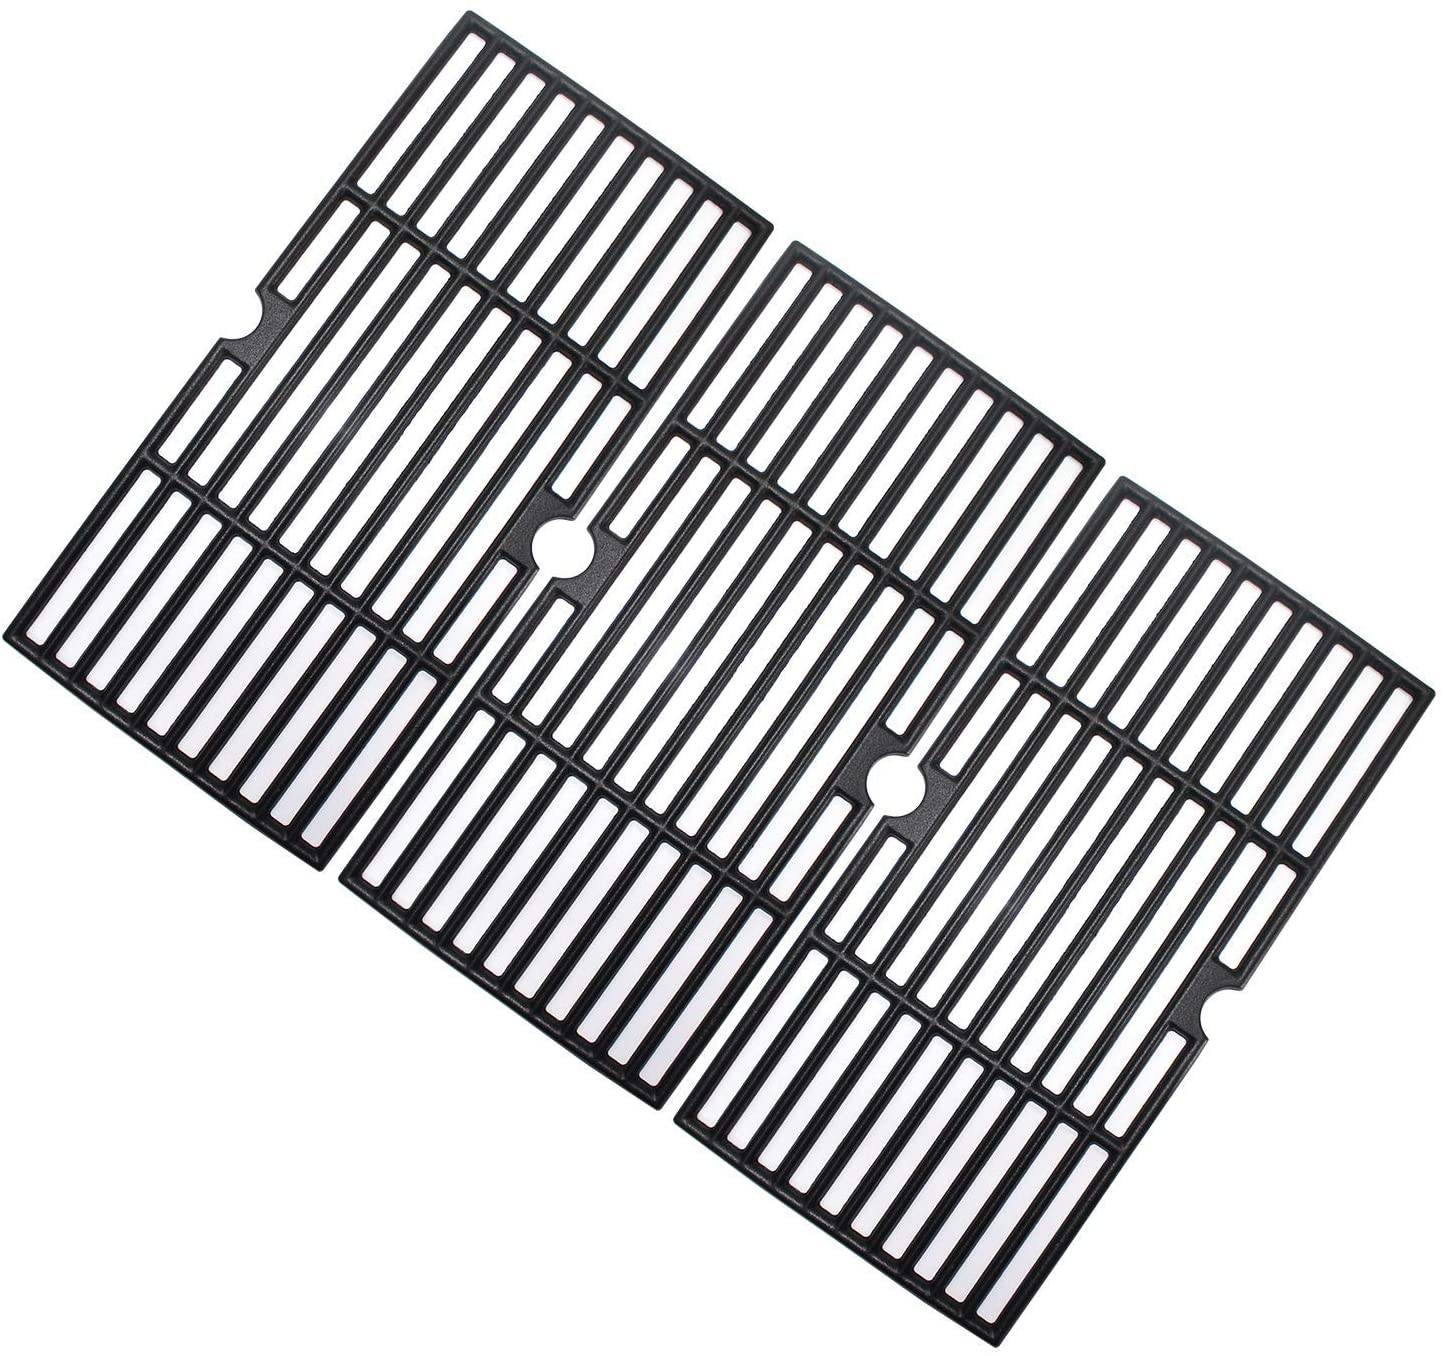 17 x 8.5 Grates for Charbroil 463340516 463371116 463344015 463343015 463344116 463370516 463274016 463370015 466642616 463371316 463371319 G460-0500-W1 G431-0042-W1 463371719 463343819